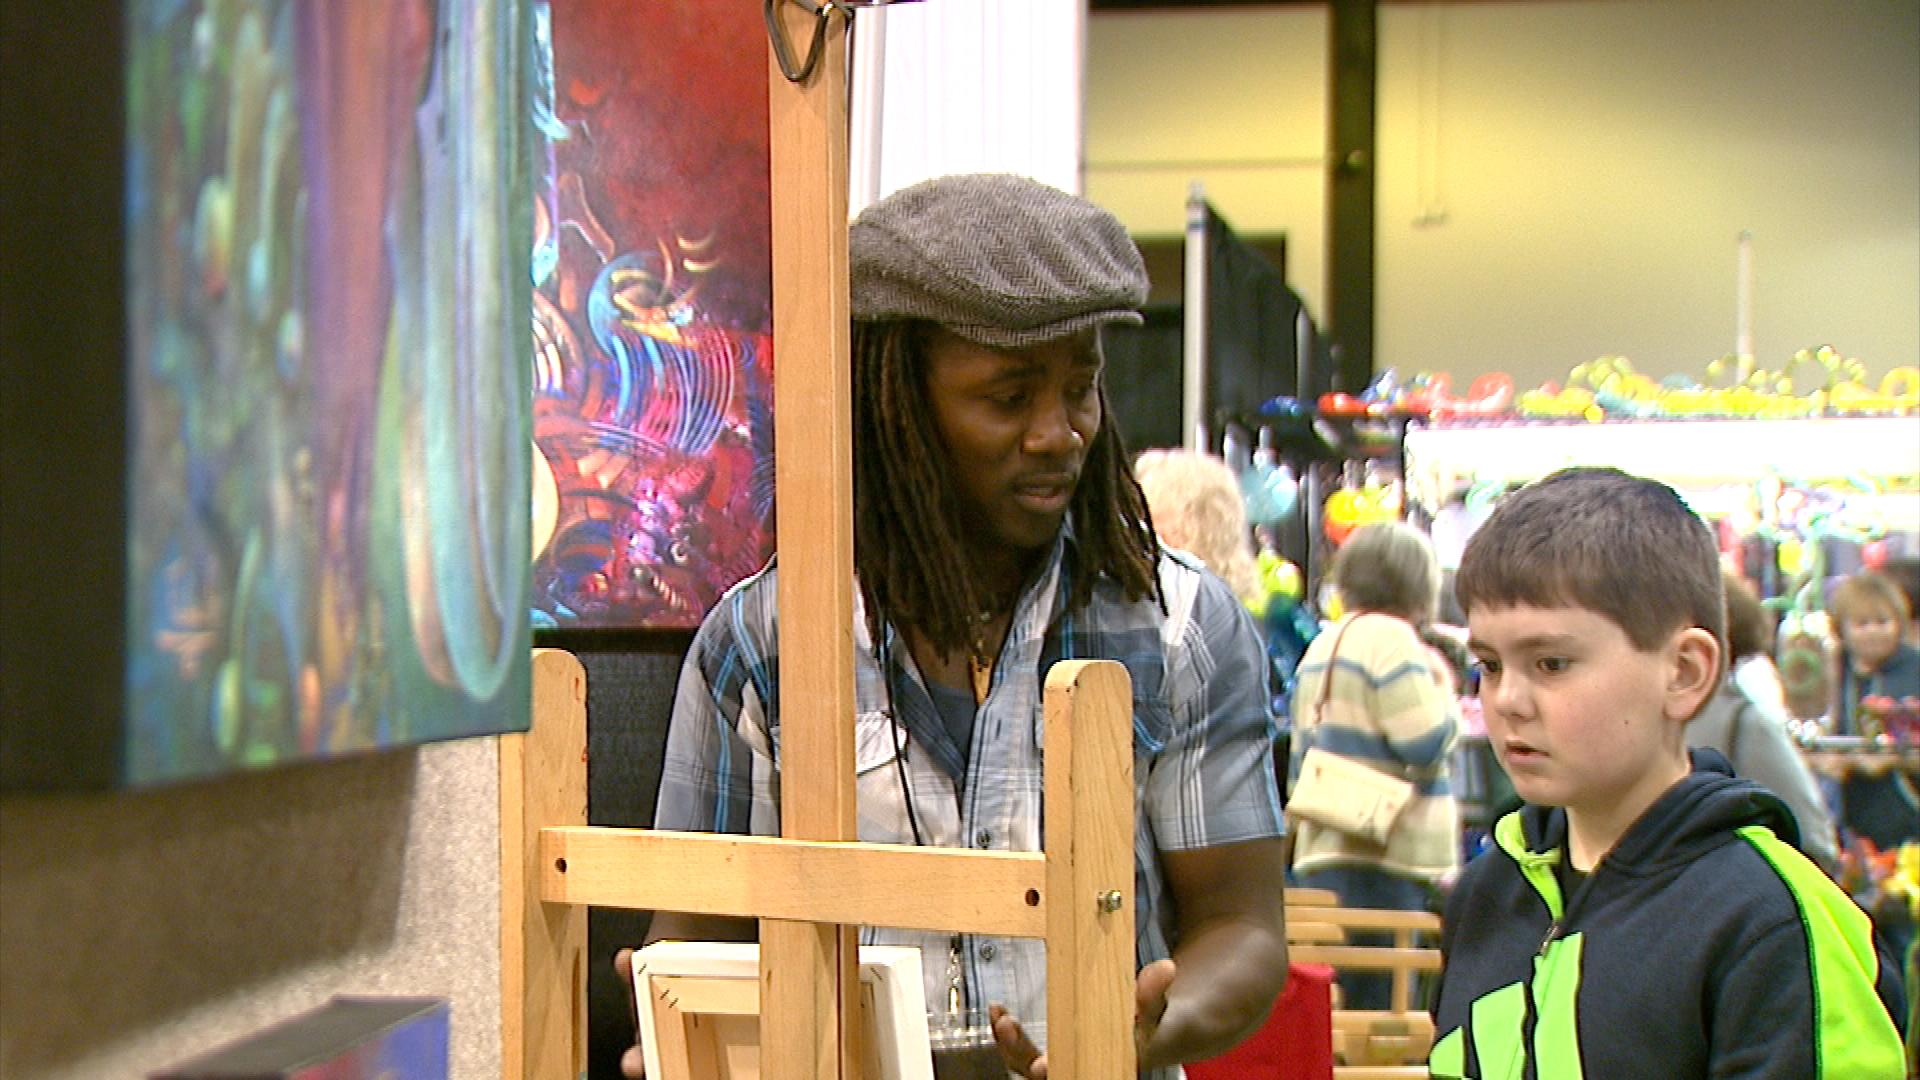 A painter teaches a young boy how to paint on canvas Saturday, March 3, 2018.(WLUK/Jessie Basinski)